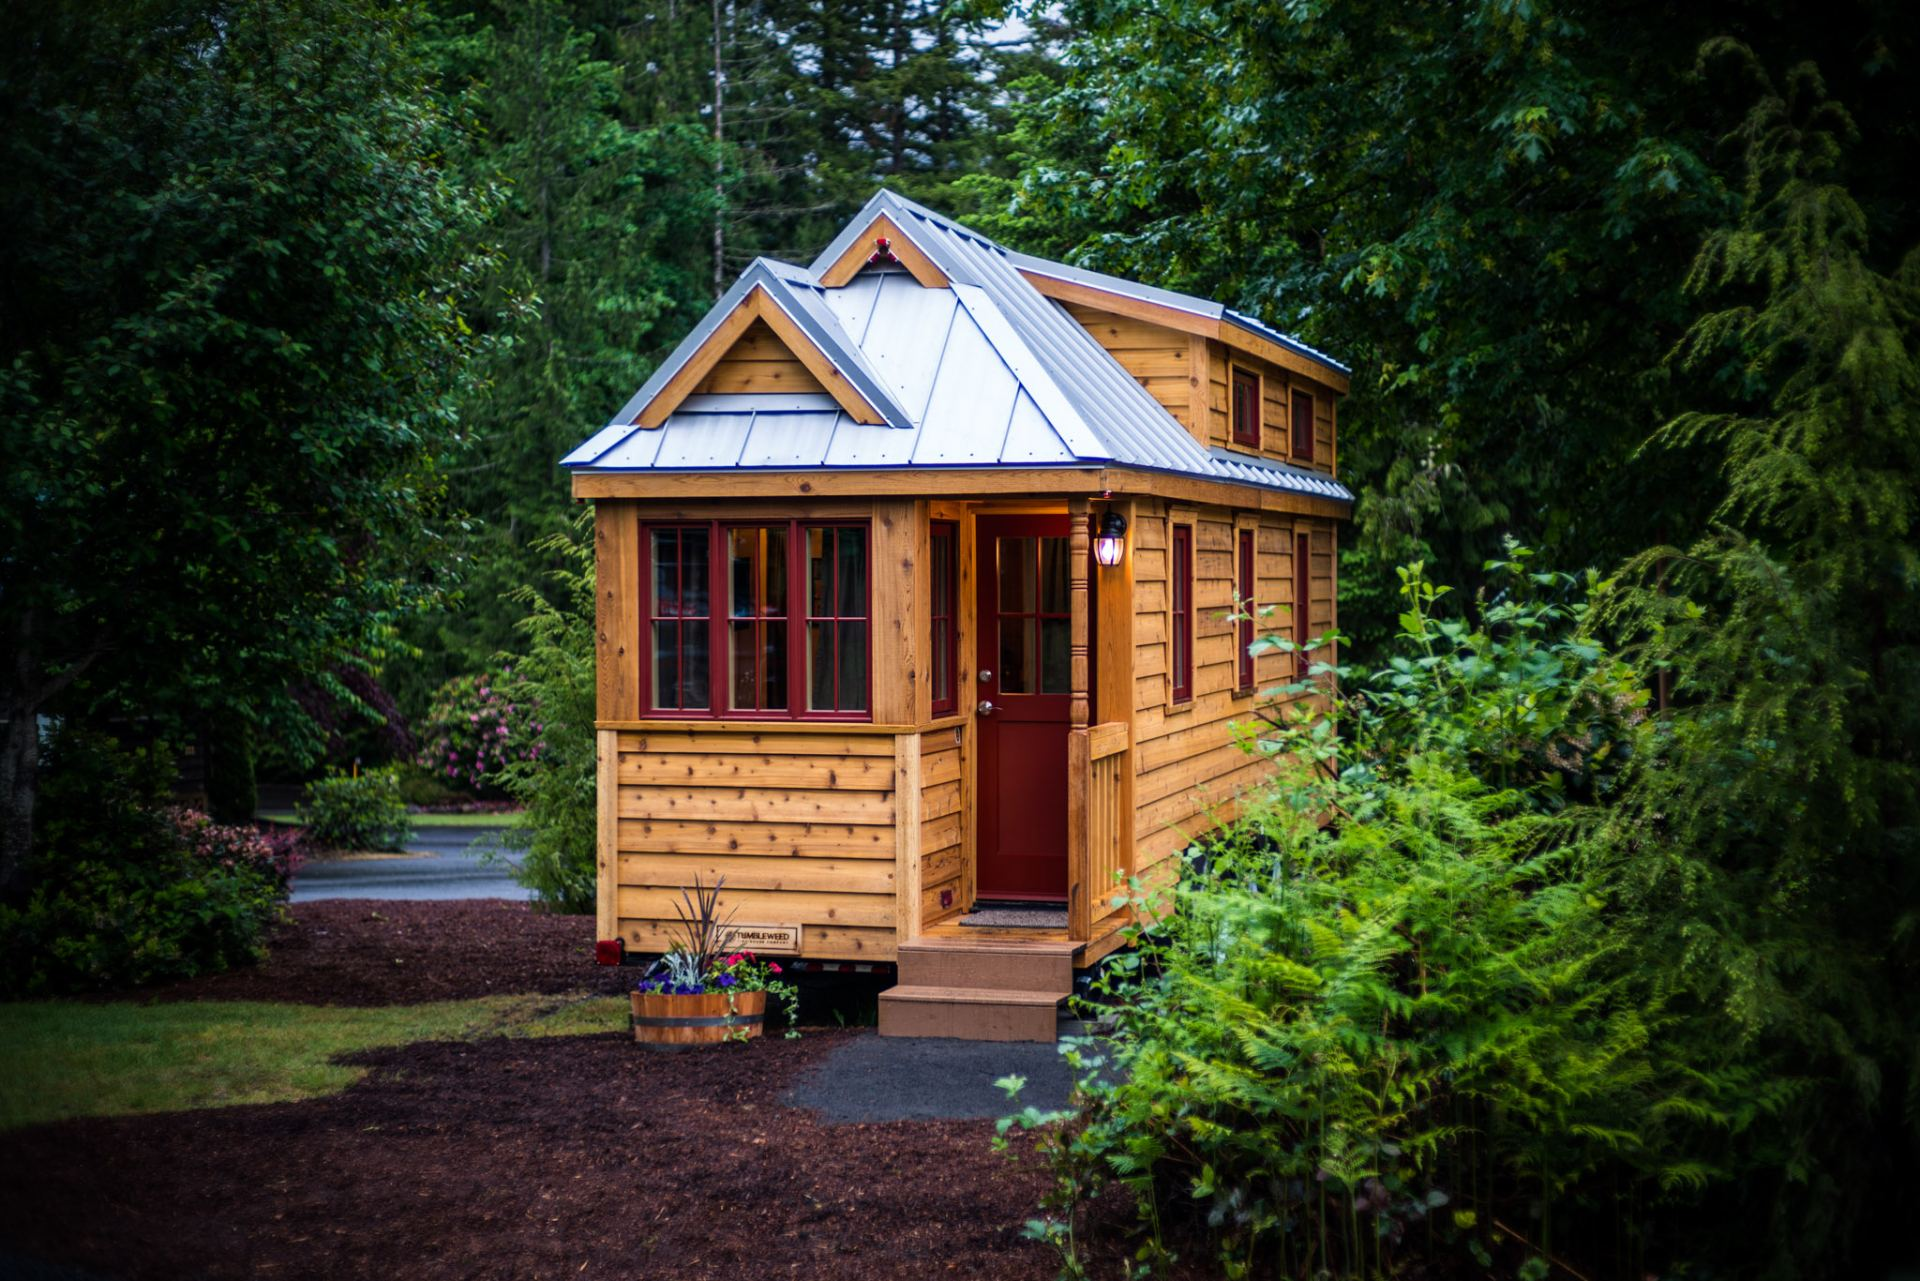 rent rentals washington land rainier cabins stat throughout in near photos romantic sale leased coastal amazing mt hood view for state incredible cabin